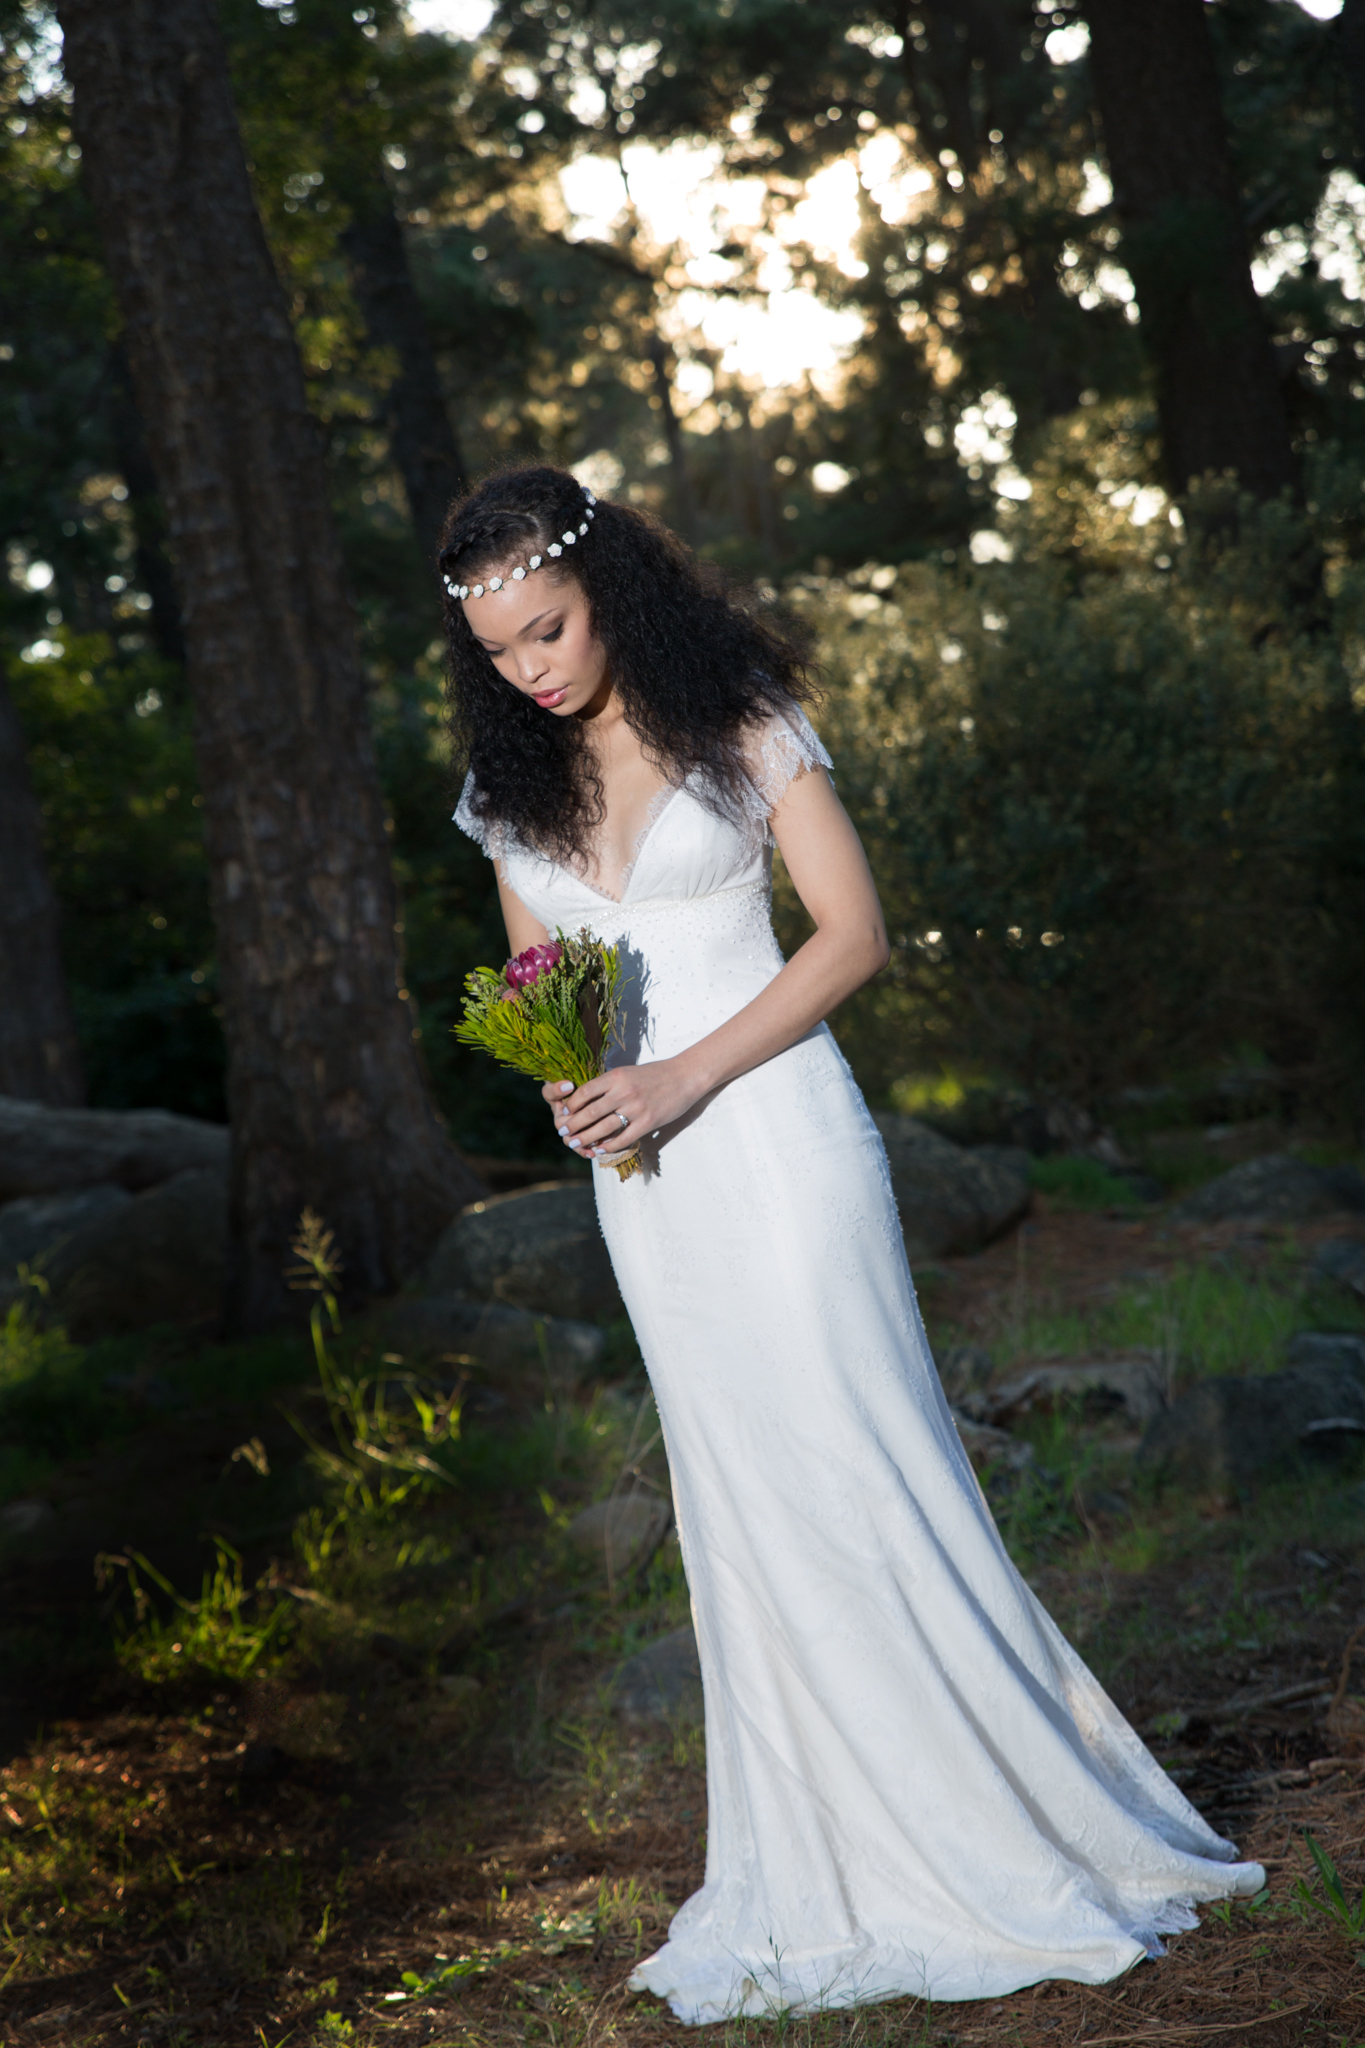 Jaqui-Franco-Cape-Town-Photographer-Brittany Wedding-6